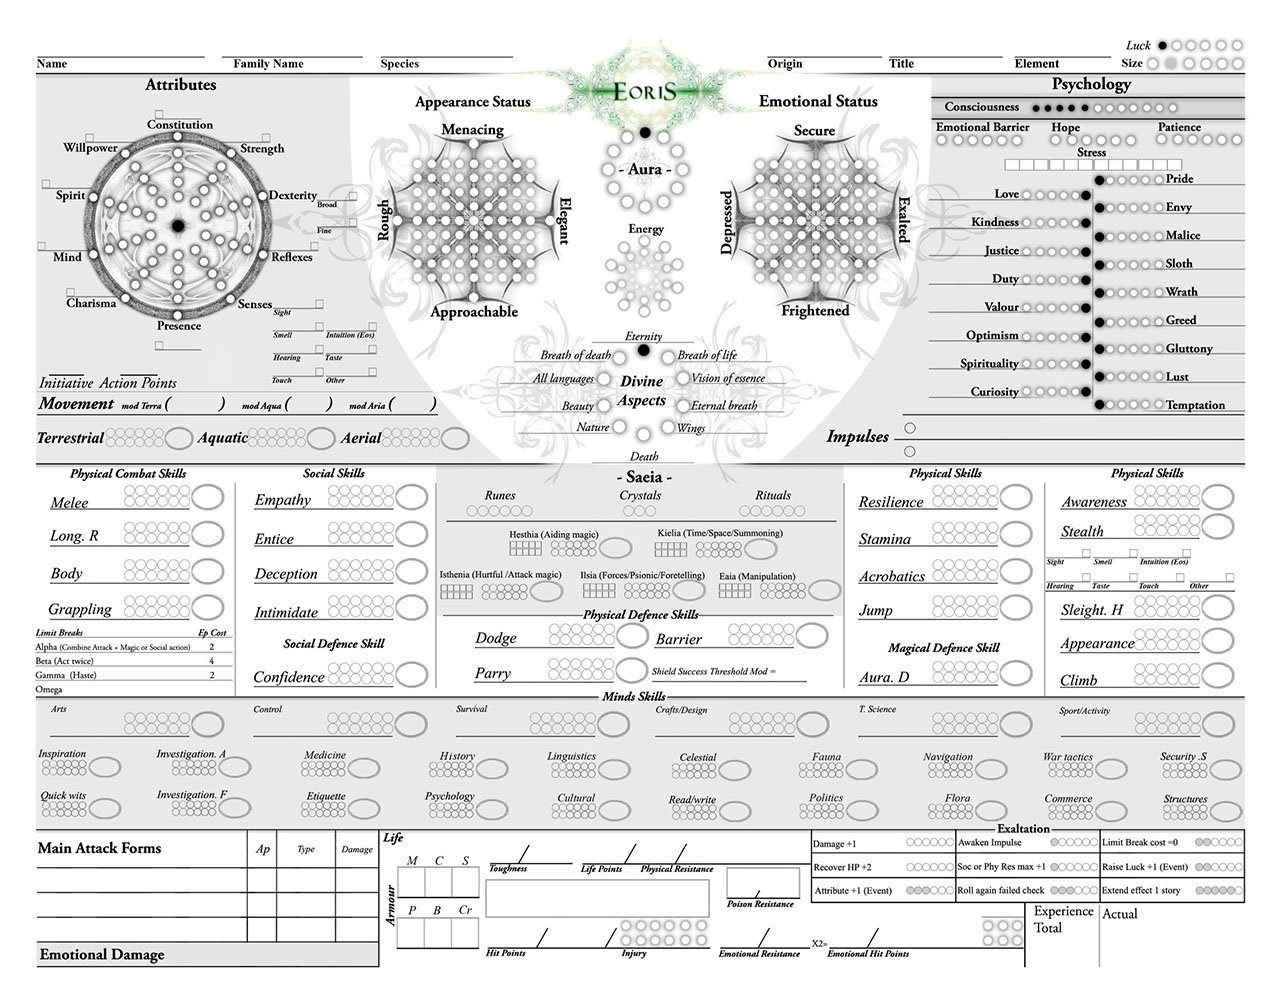 The Art Of The Rpg Character Build - 2014-10-17 14:36:52